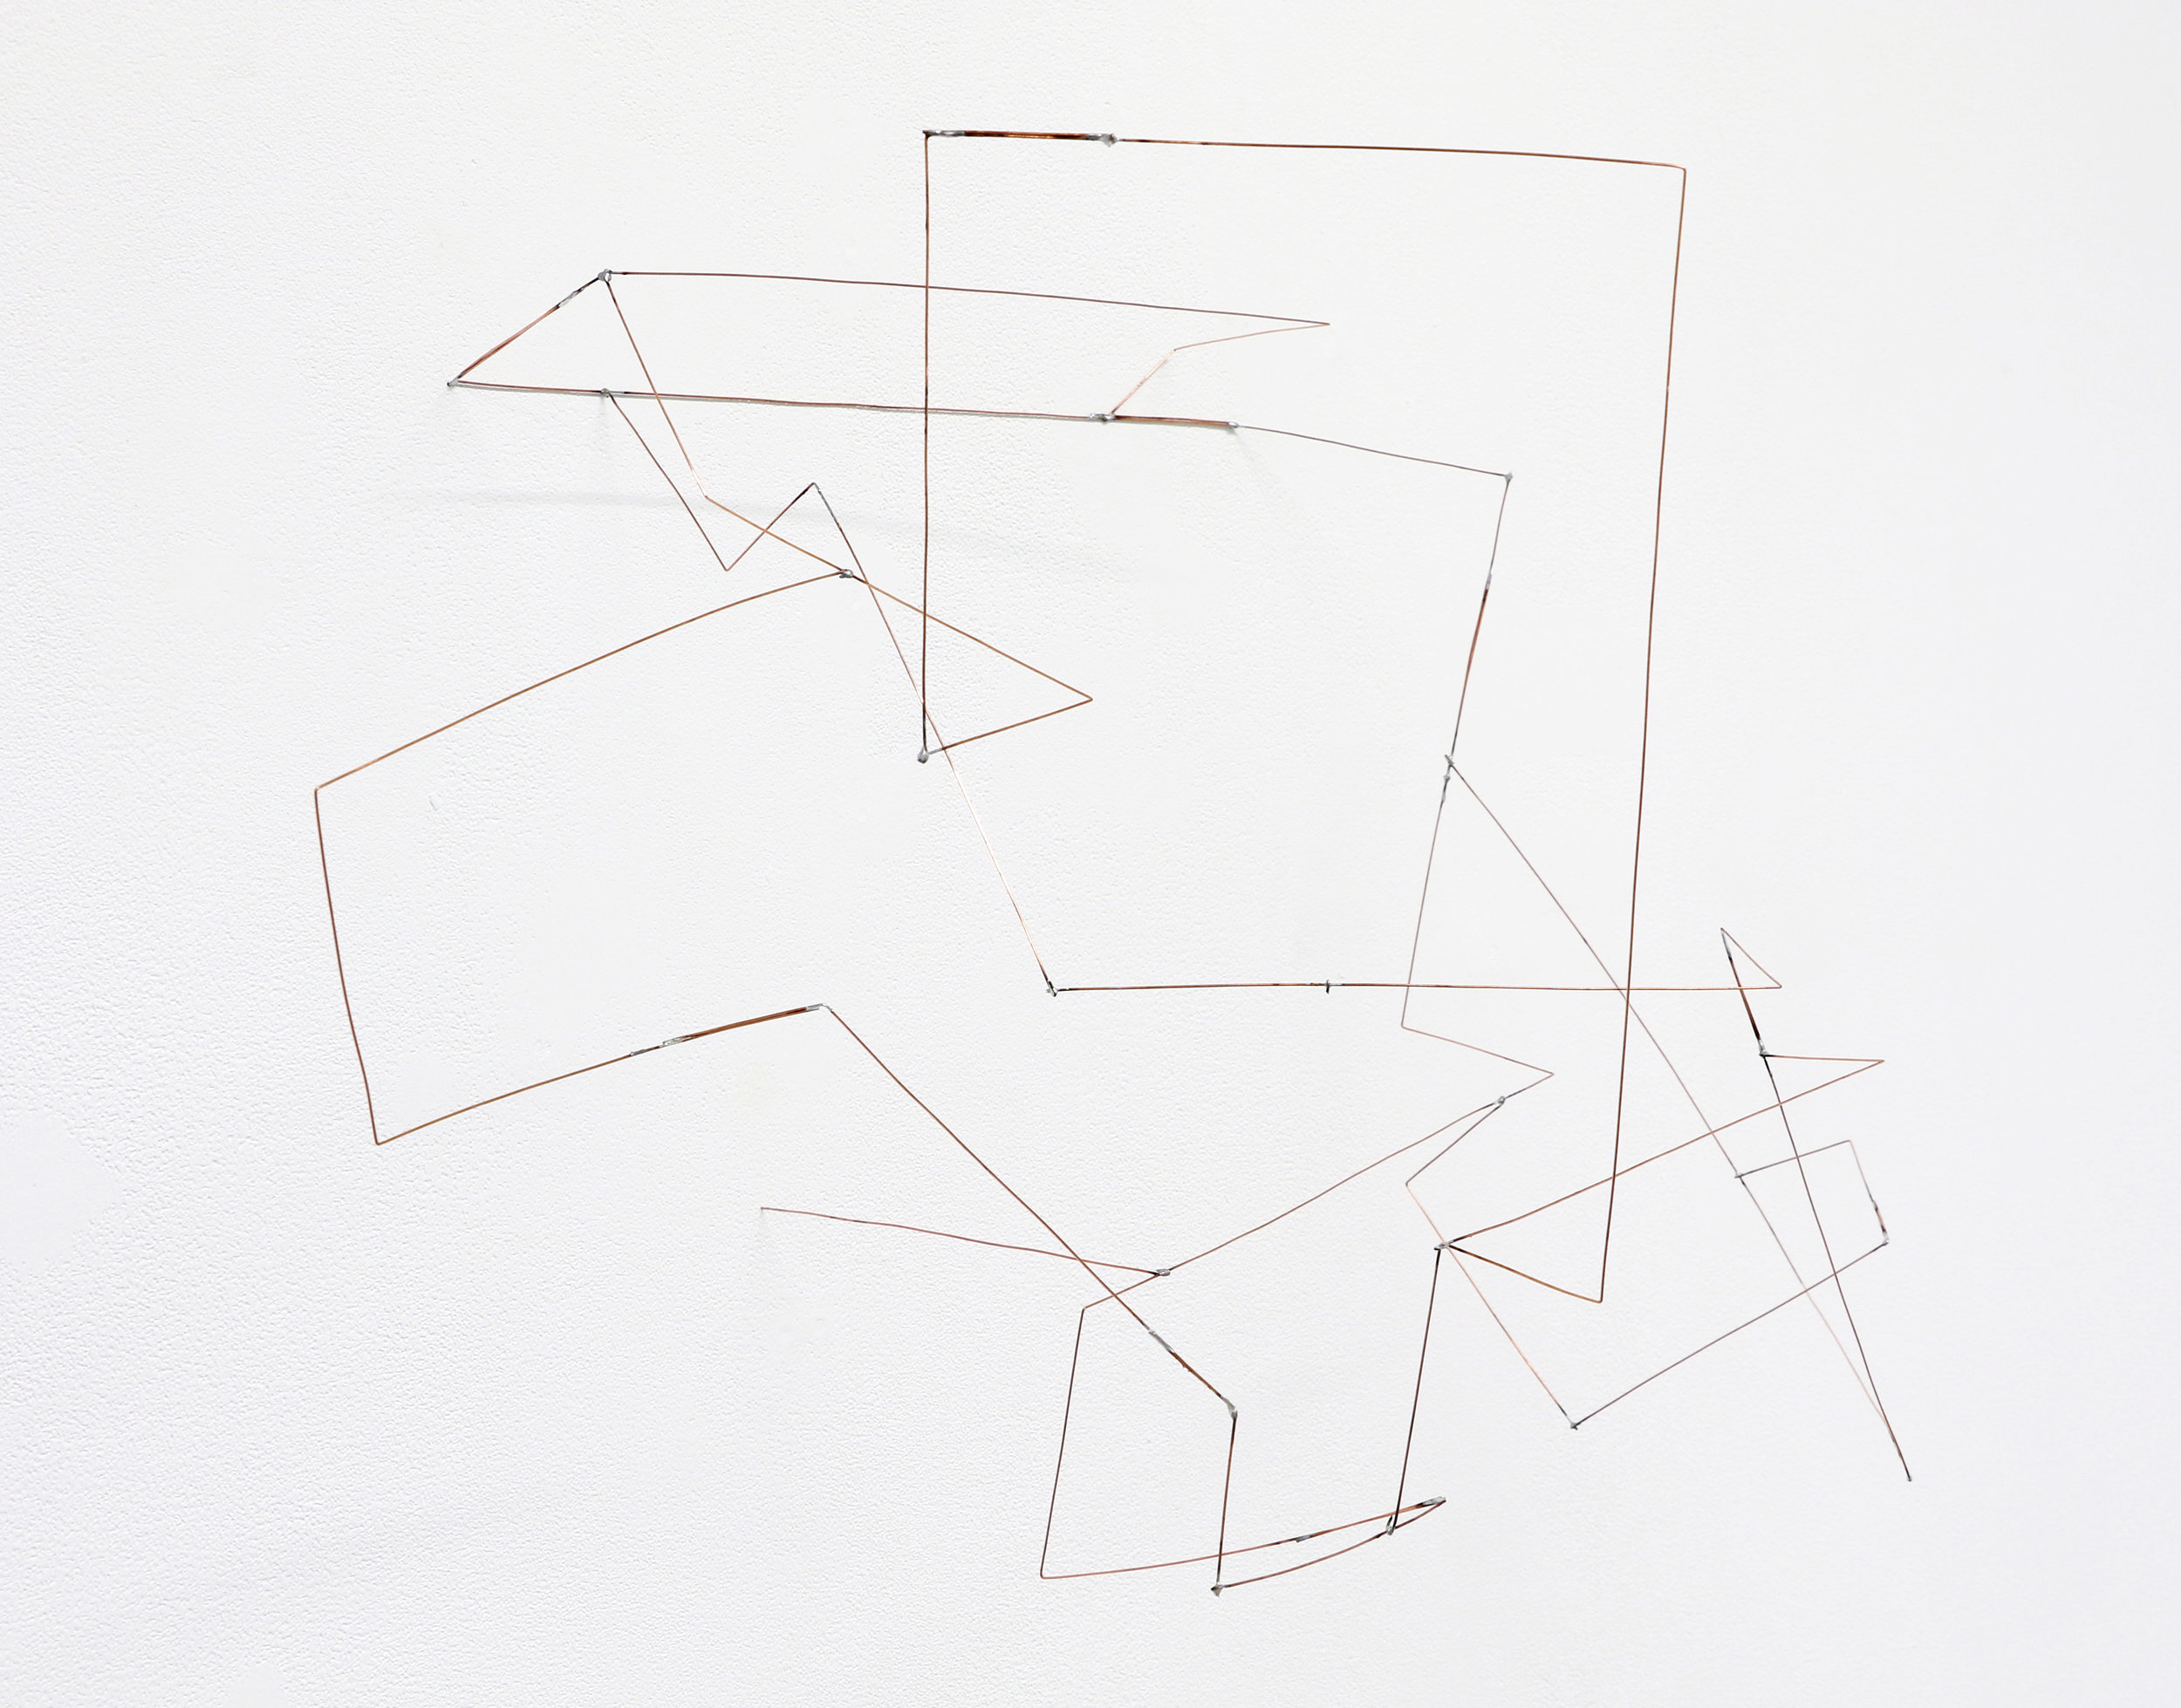 """Lômic , 2019, soldered copper-coated steel wire, 16"""" x 24"""" x 14"""""""